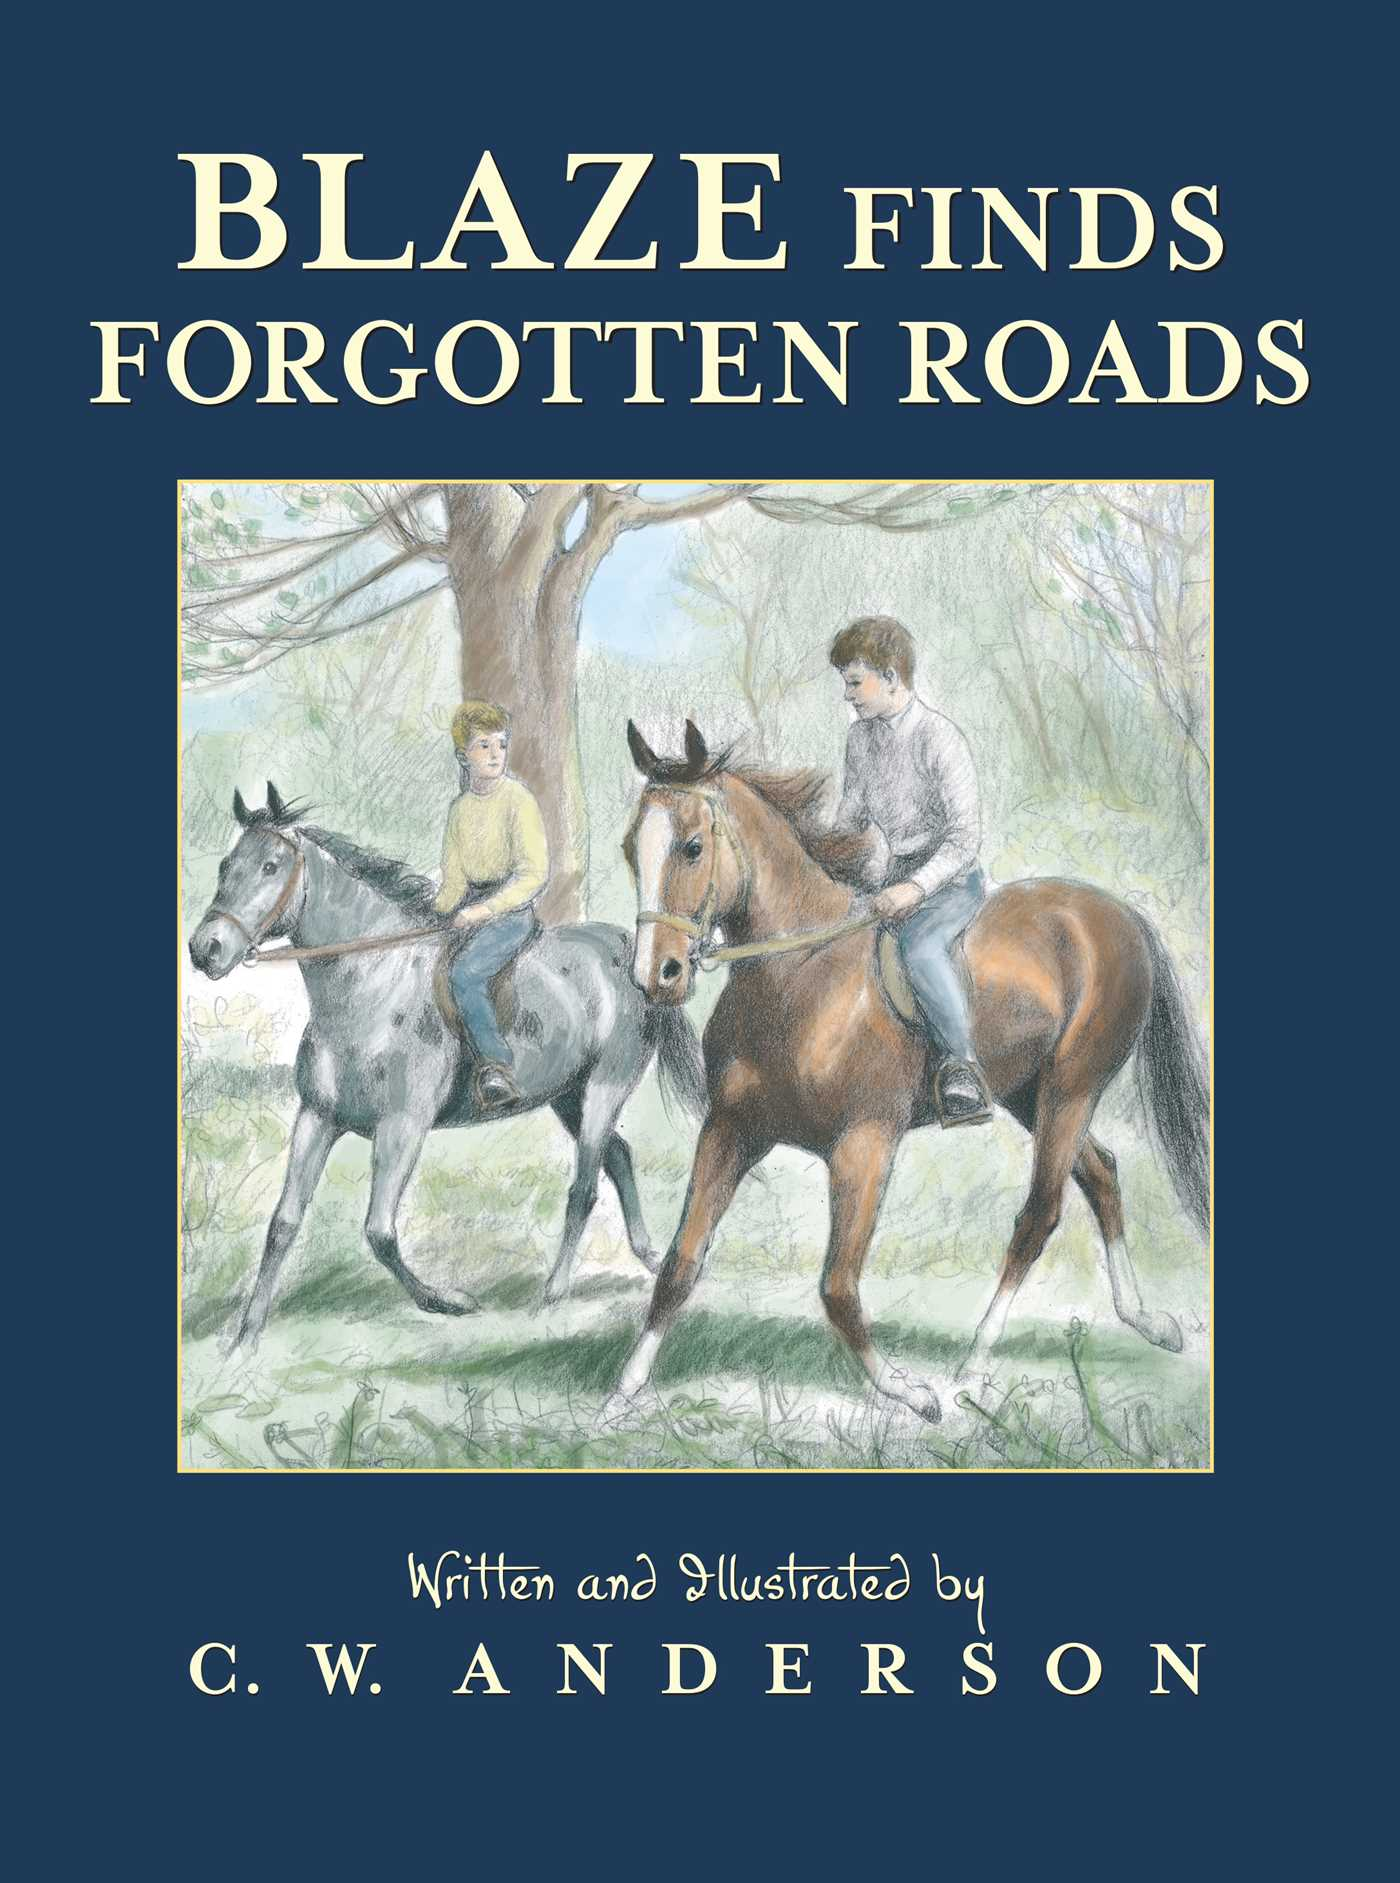 Blaze finds forgotten roads 9781534413672 hr